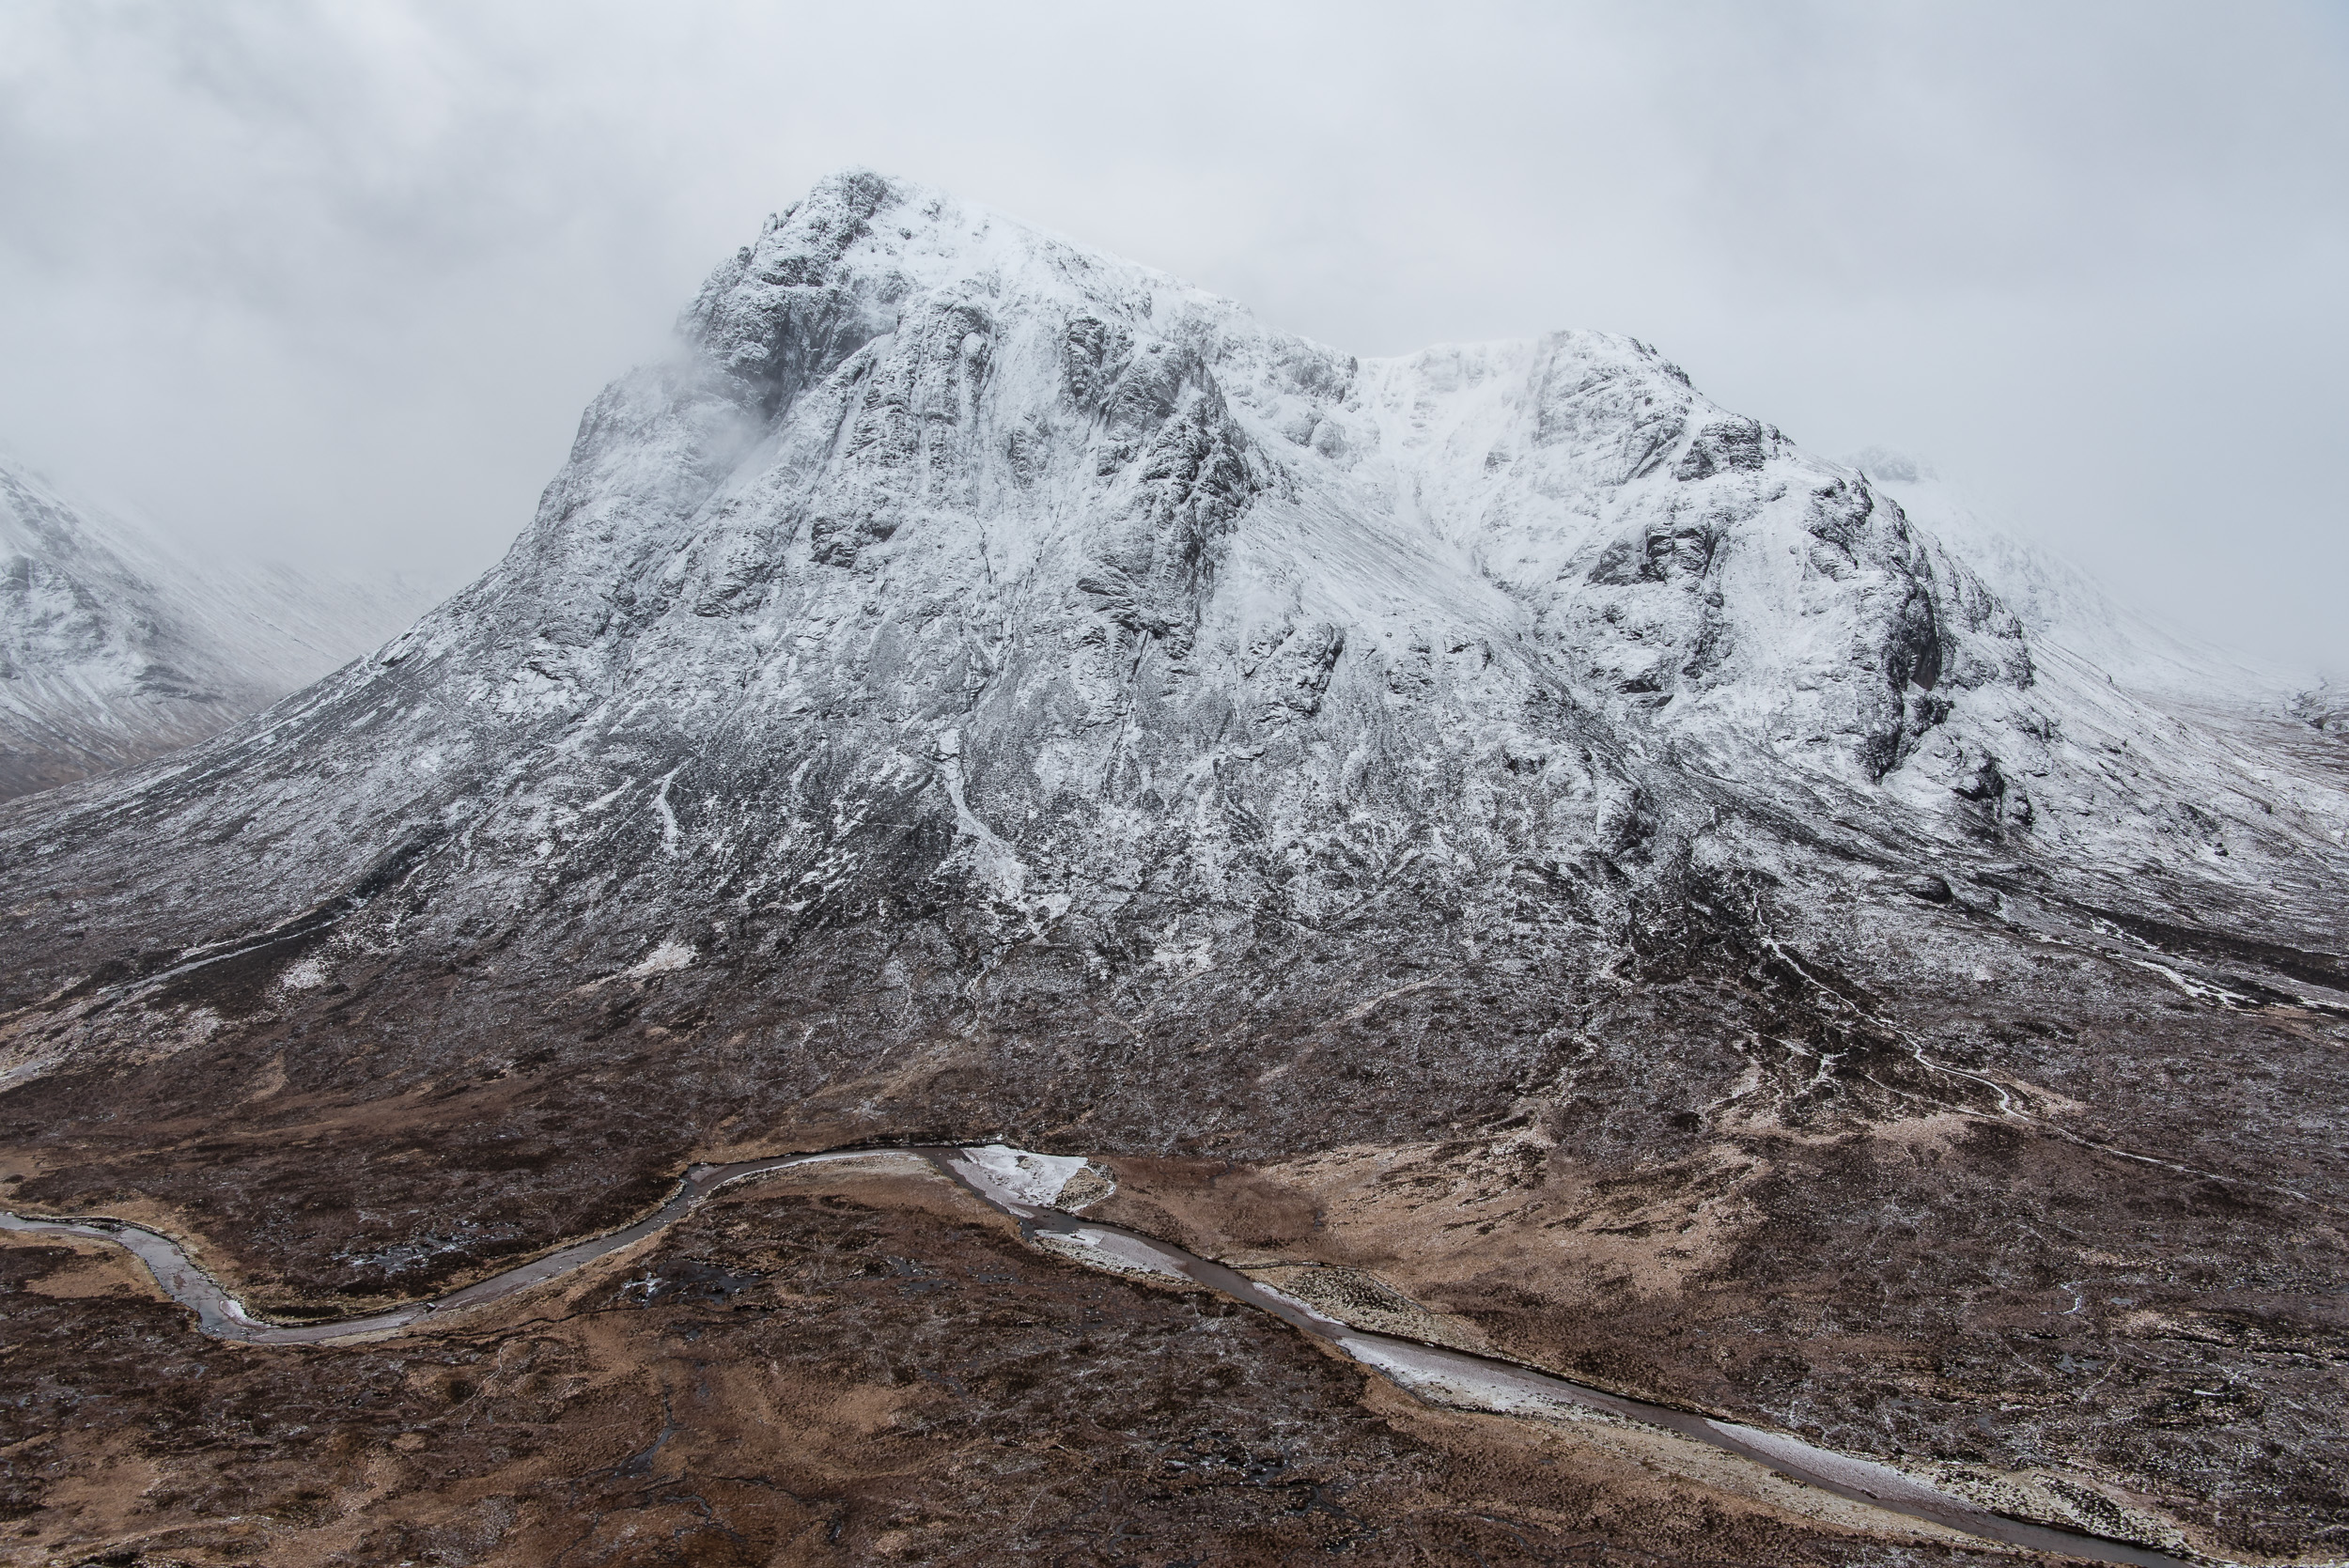 20170302-Good Morning Stob Dearg.jpg